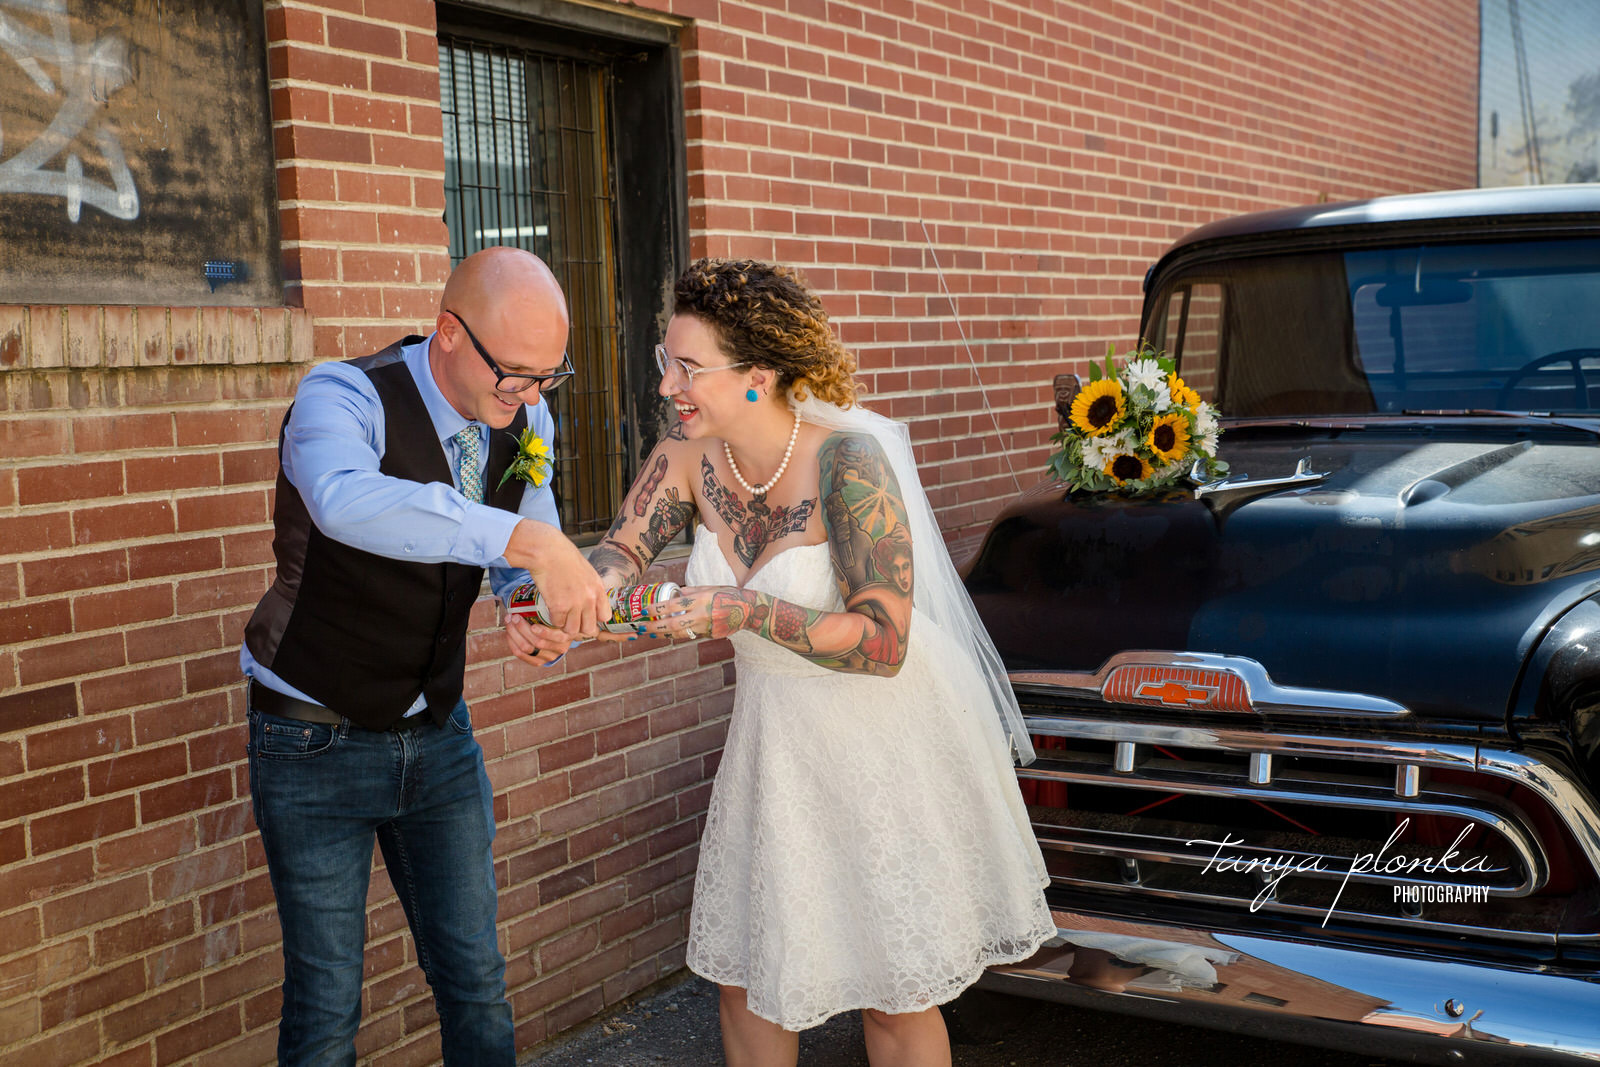 bride and groom smile at each other while holding cans of Pilsner